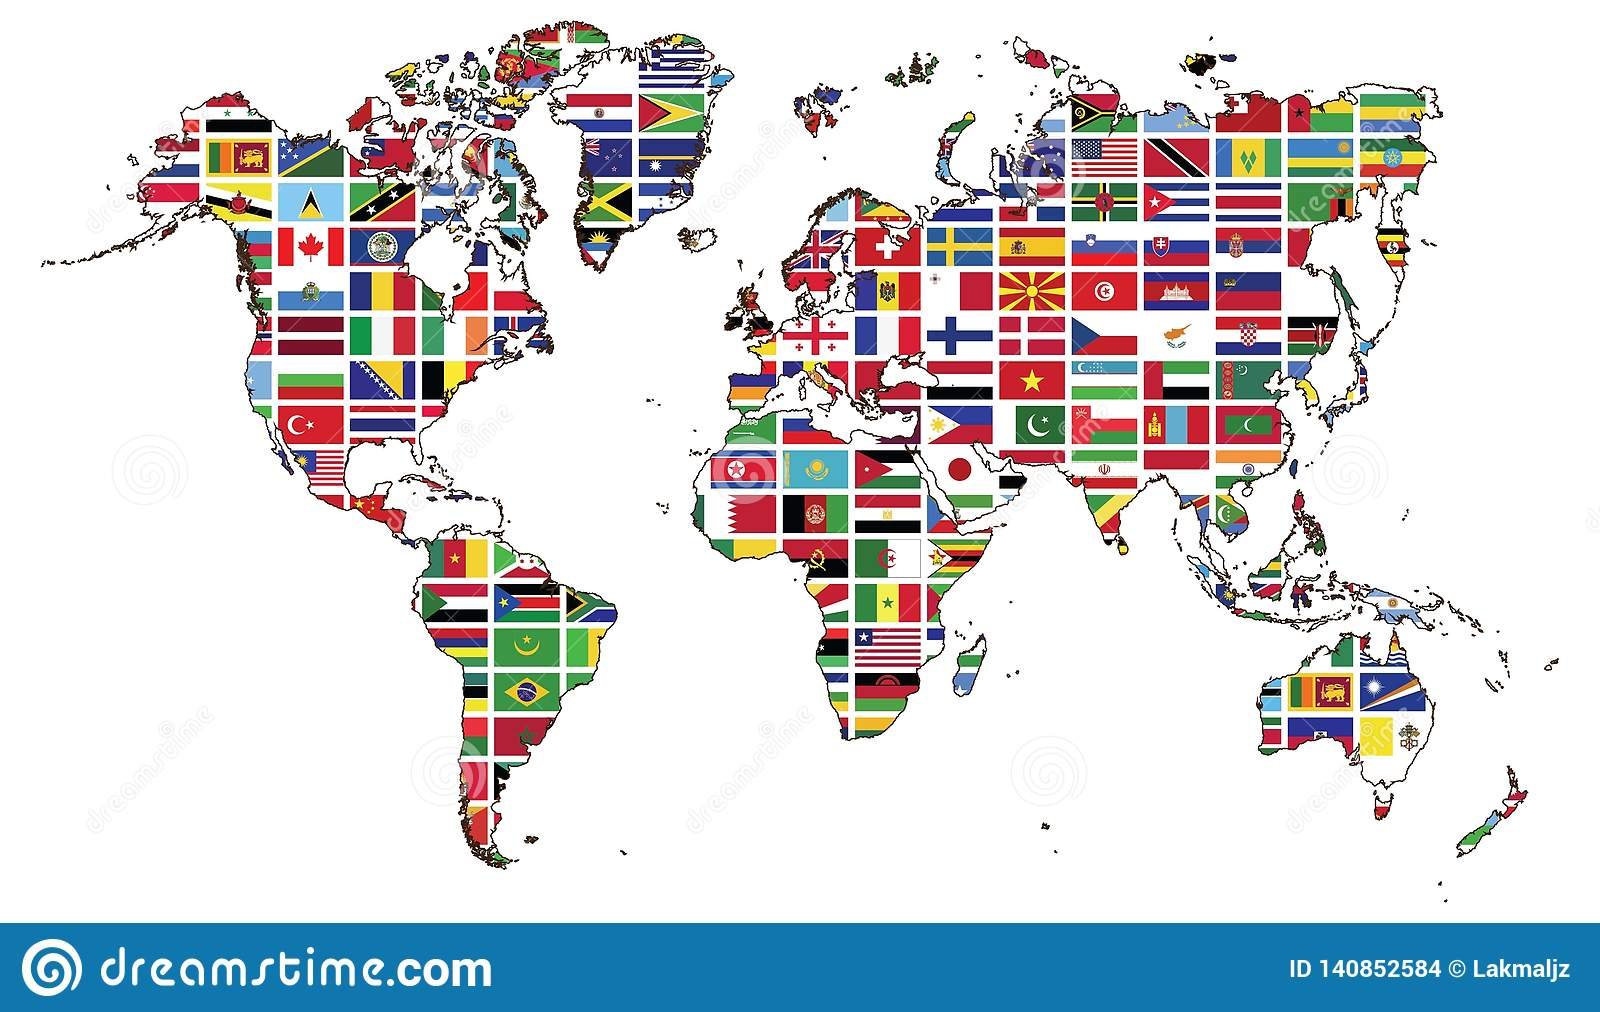 World Map And World Flag Collection Stock Vector ... on global flags, world map banner, world map with countries, world map countries of the world, us state flags, world map europe, world map engraving, middle east flags, world map apparel, african flags, world map wallets, german flags, north american flags, world map us states, globe flags, country flags, world map wall graphics, russia flags, world map bookmarks, usa maps flags,